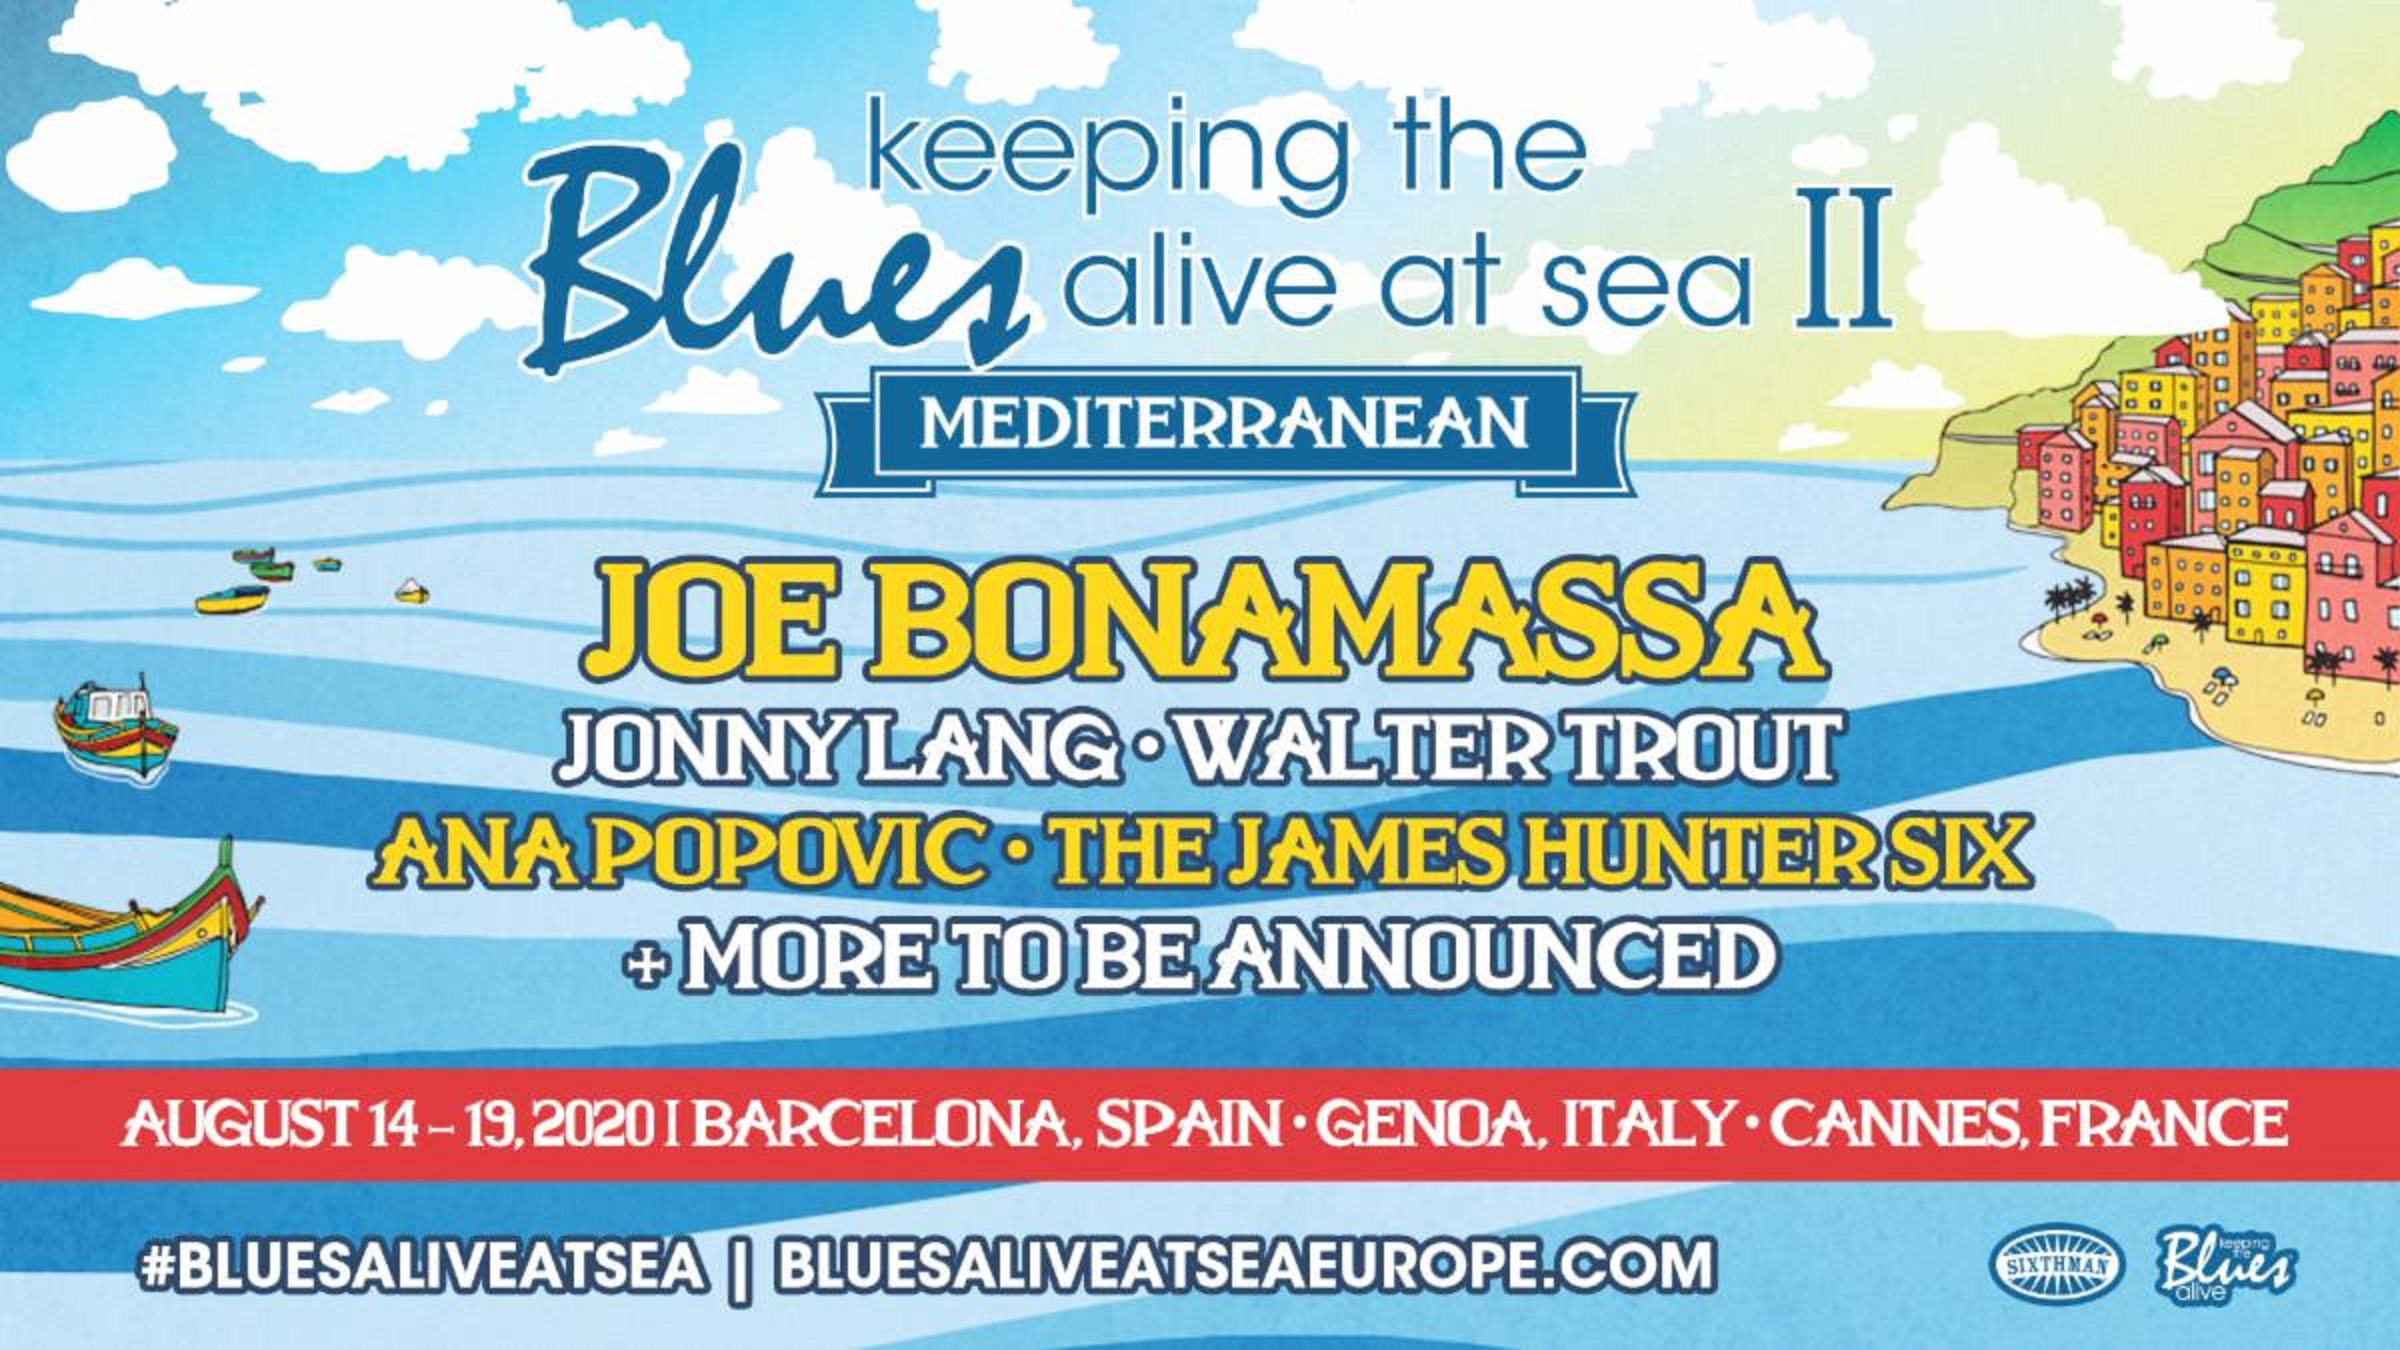 Joe Bonamassa announces Jonny Lang, Walter Trout, and more for 2nd annual Mediterranean cruise